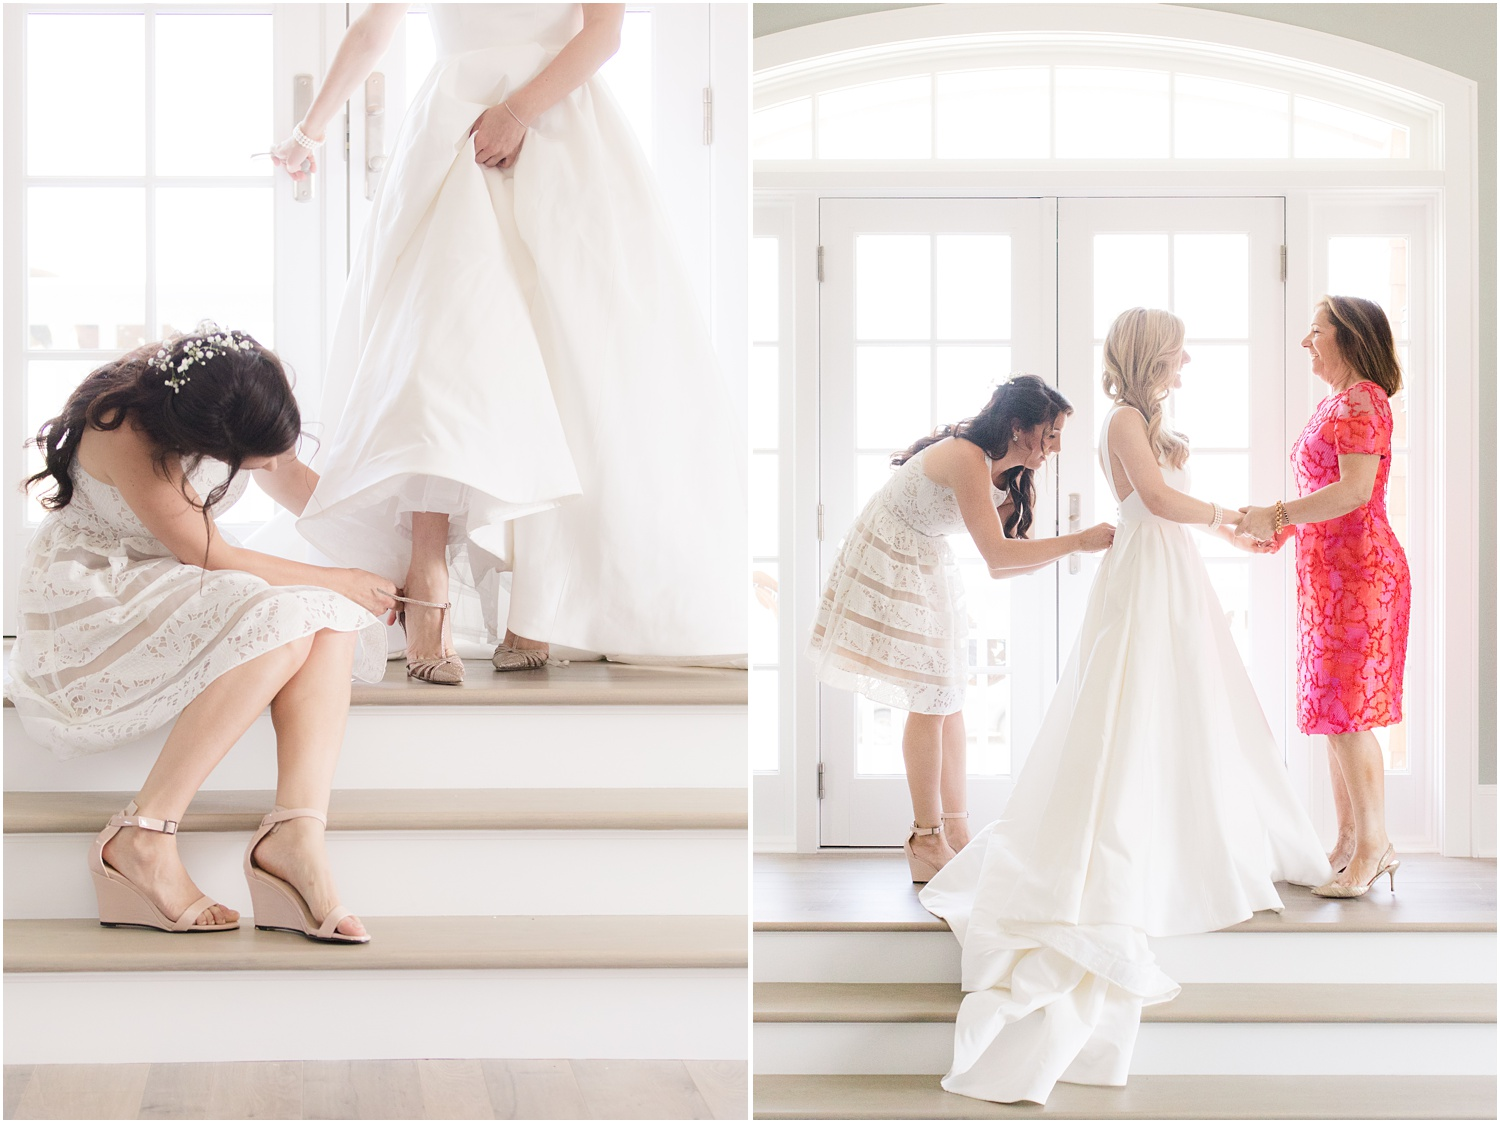 Mother and sister of the bride helping her into her bridal gown at home in Mantoloking, NJ.